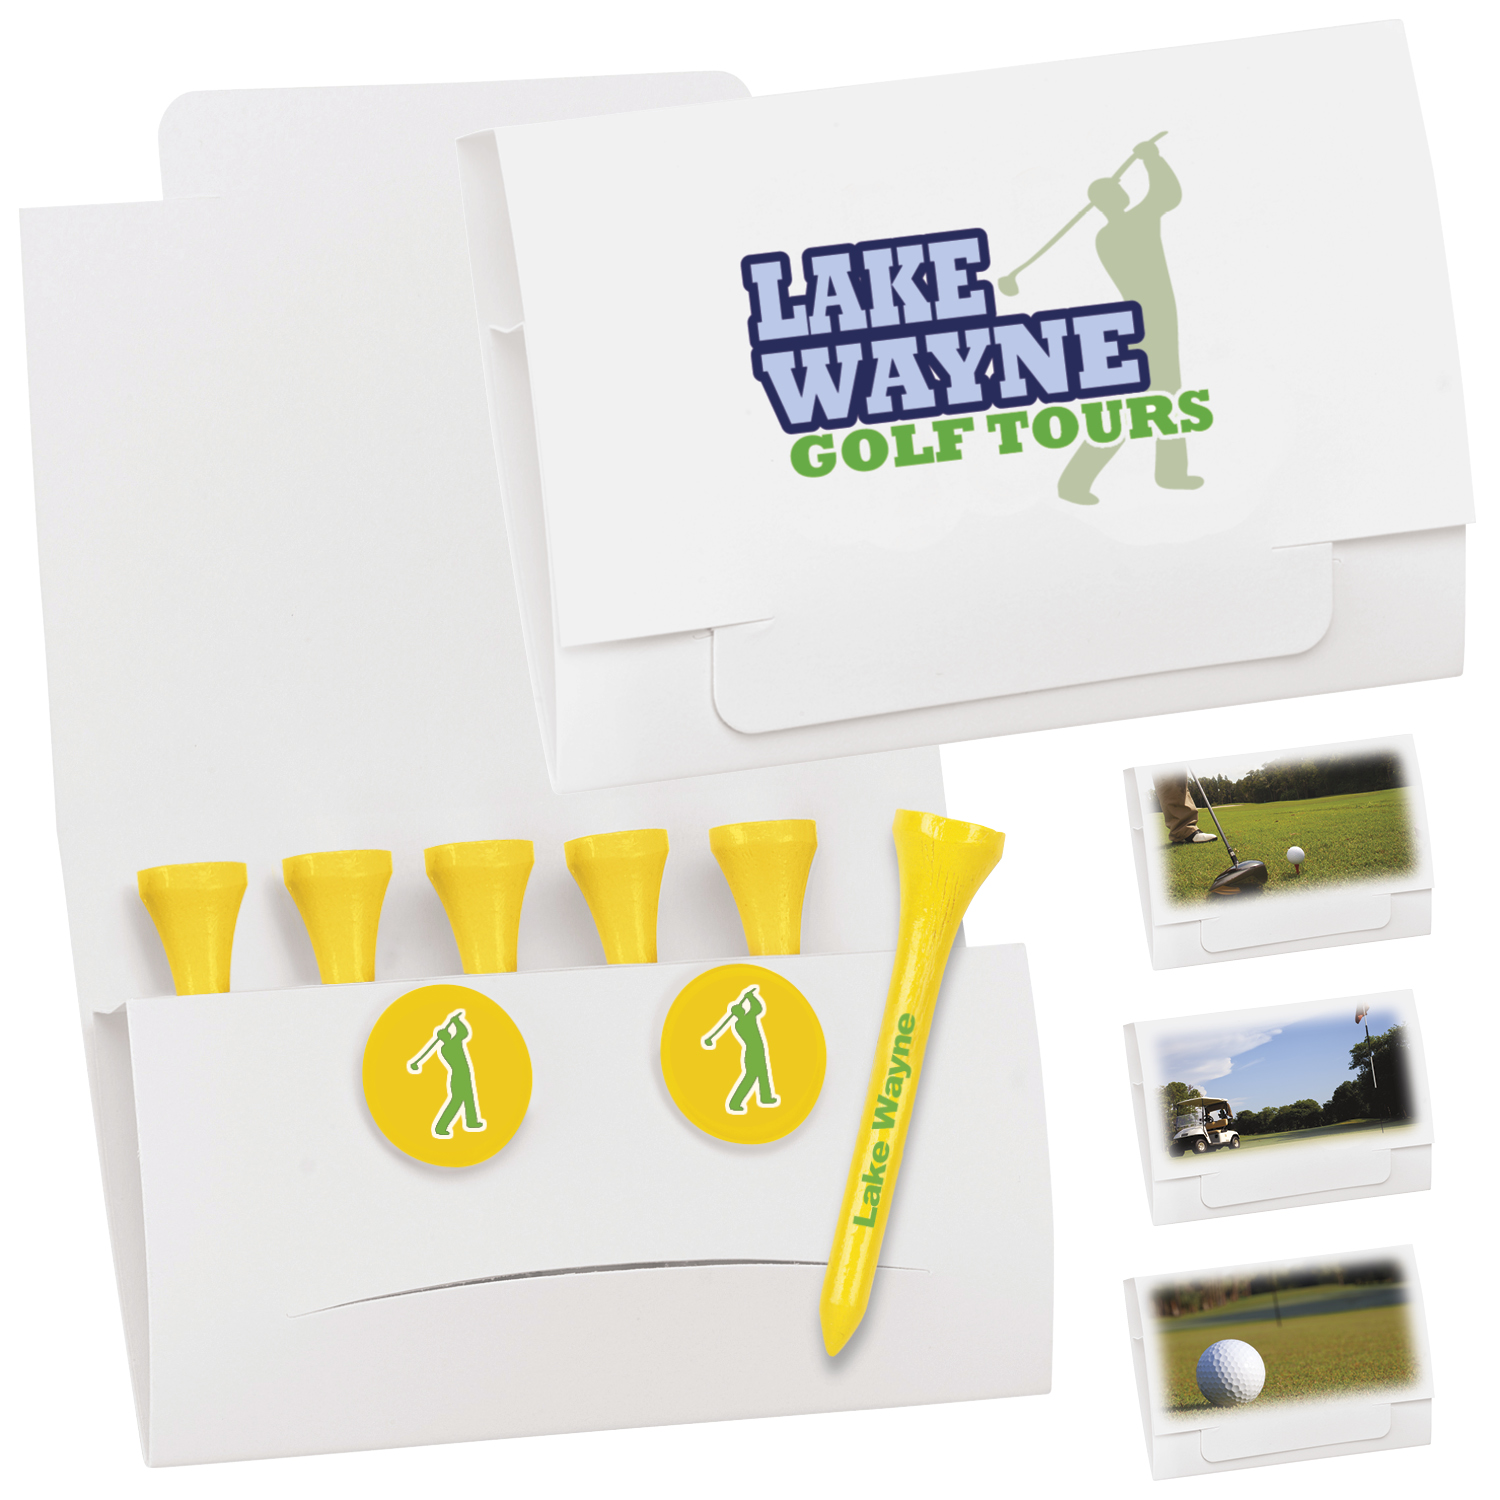 6-2 Golf Tee Packet w/ 2 Ball Markers - 2 1/8